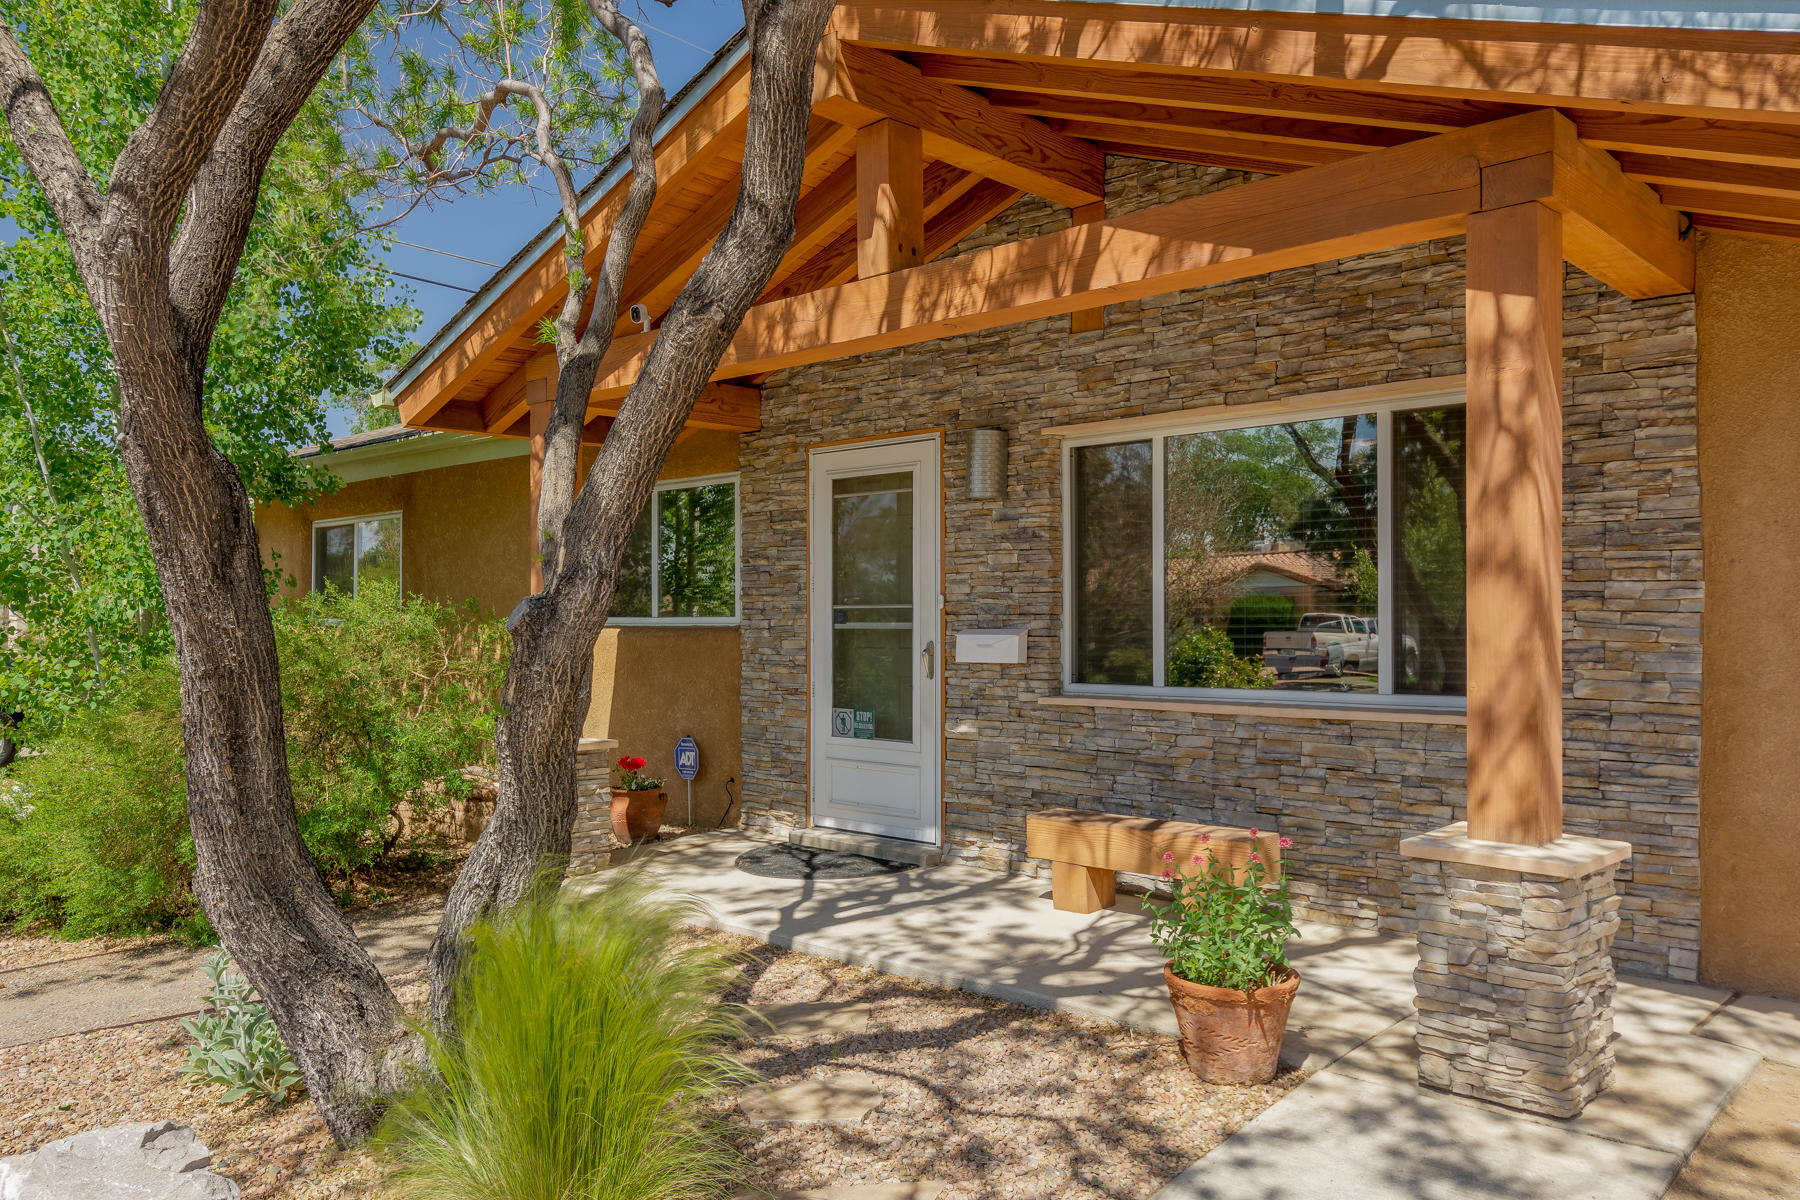 Looking for a statement? Here it is! The large timber entry greets you with a touch of alpine-chic. Beauty and simplicity throughout the home and yards. Updates include stainless appliances (2017), new roof (2018), York combo HVAC (2020). Thermal windows throughout (west facing have solar glare/heat reducing tint). Updated kitchen cabinets & corian countertops w/integrated sink. Owners suite has well appointed bath fixtures featuring cherry vanity (floating) and built-in linen cabinet. The dining/family/primary bedroom addition give everyone their space. Three more bedrooms & an updated full bath. Sitting under the backyard pavilion you will find a private wellness zone. Fully landscaped yards. Don't miss the hot tub and workshop/storage. This is a very special property!